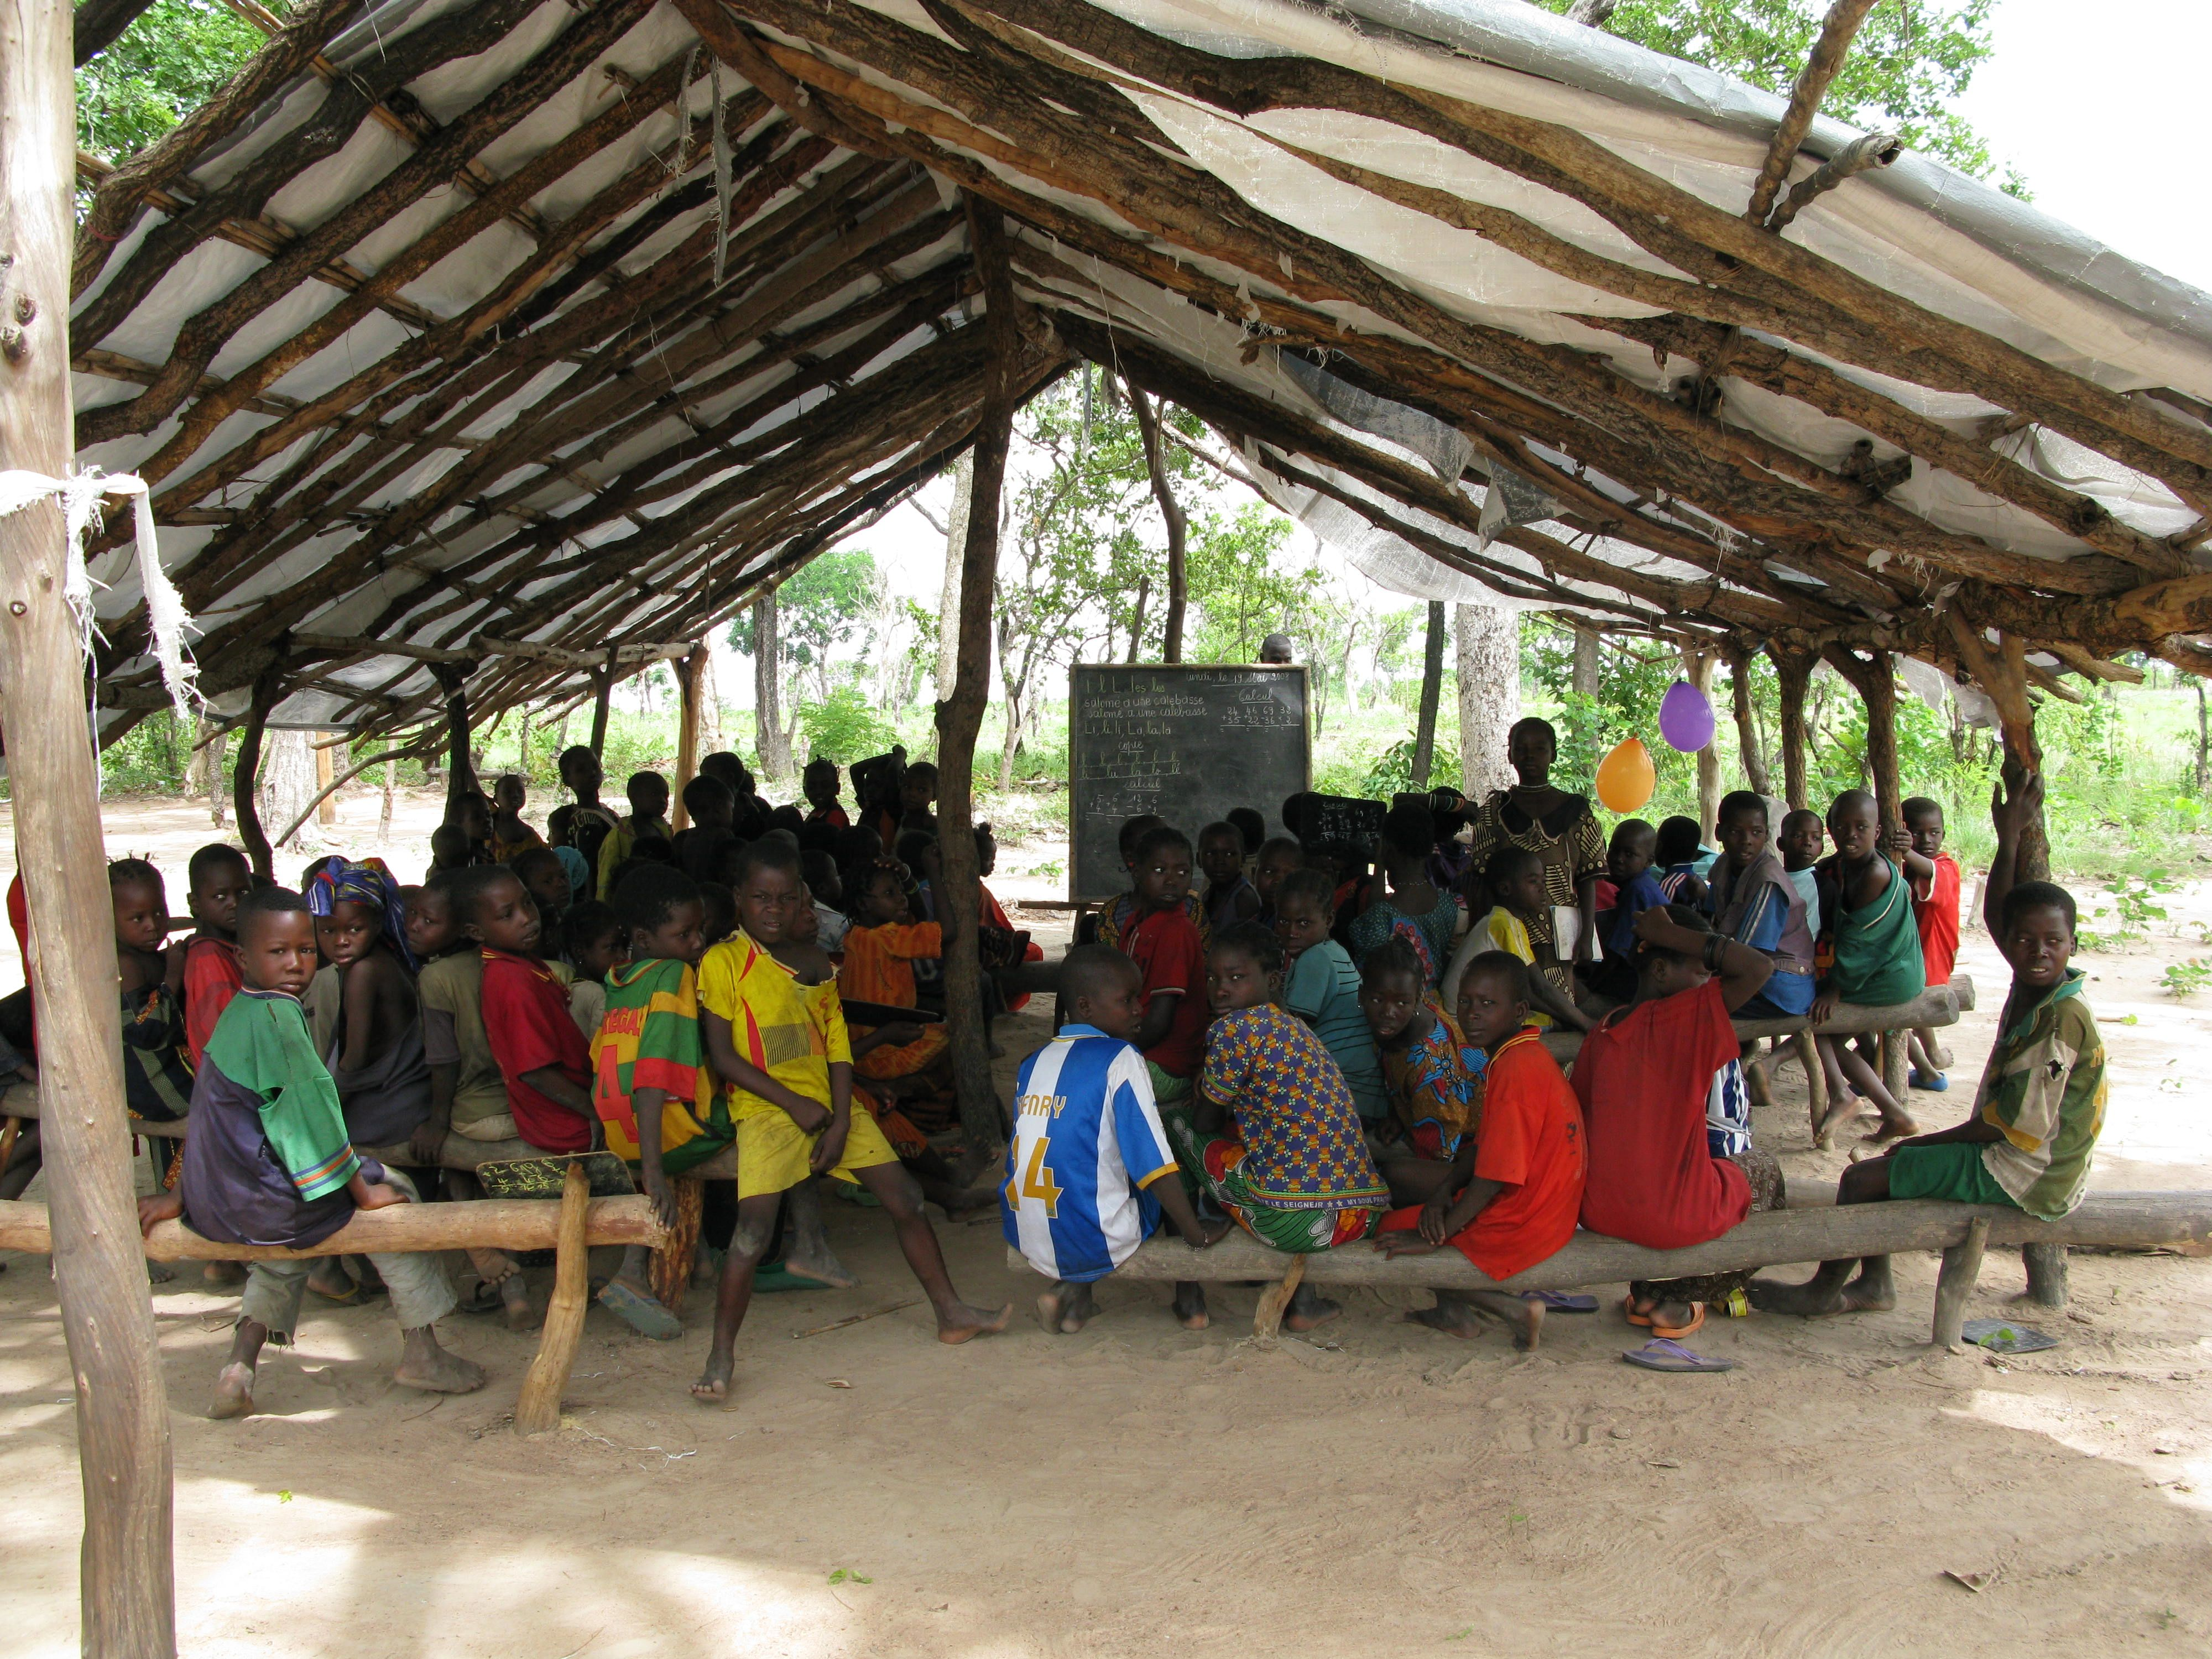 Darfuri children attend class at a bush school